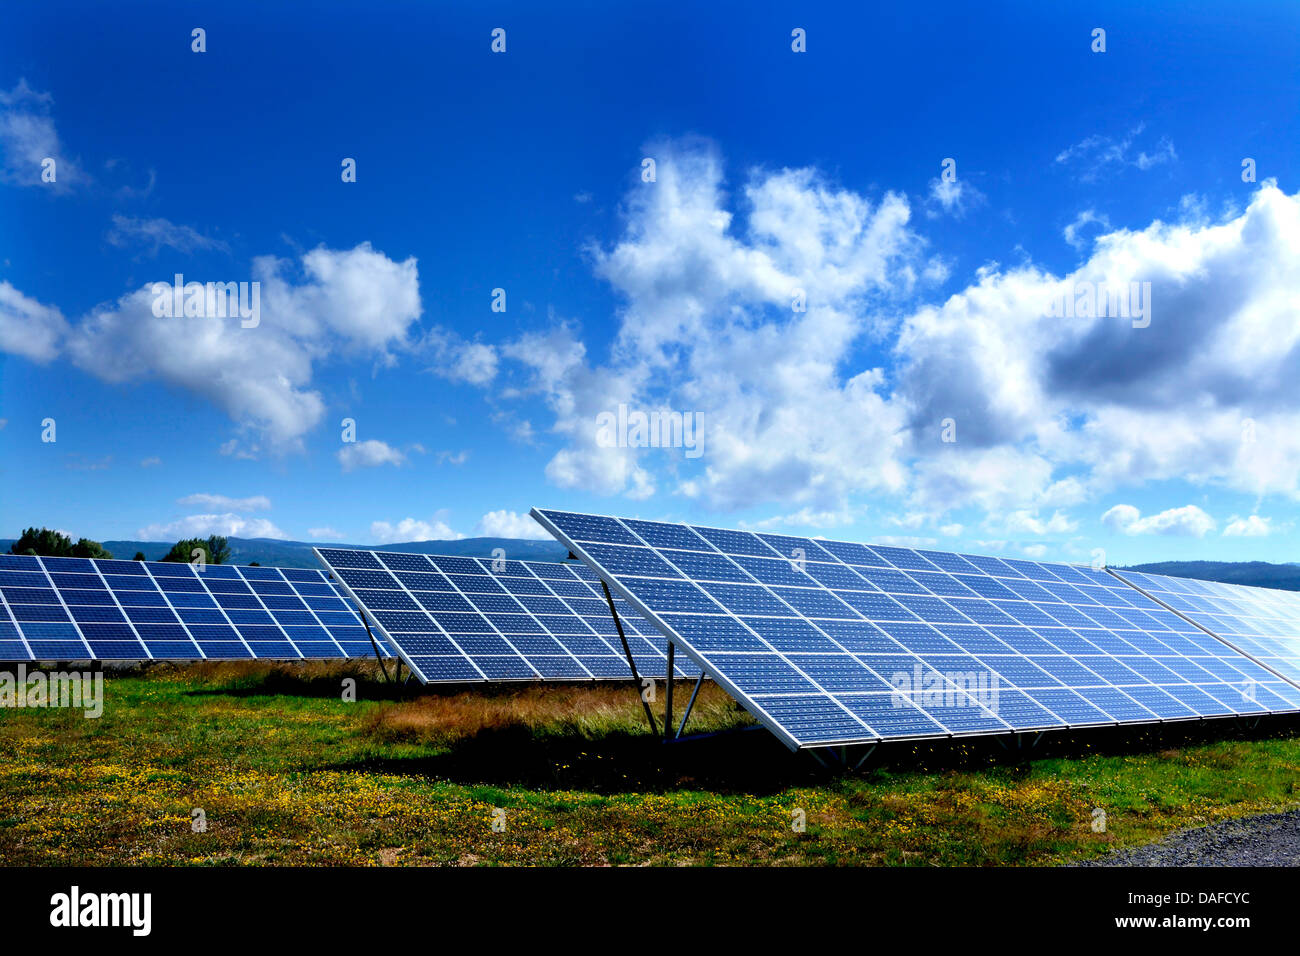 Solar panels producing renewable energy in a large array at a solar farm. Auvergne. France - Stock Image